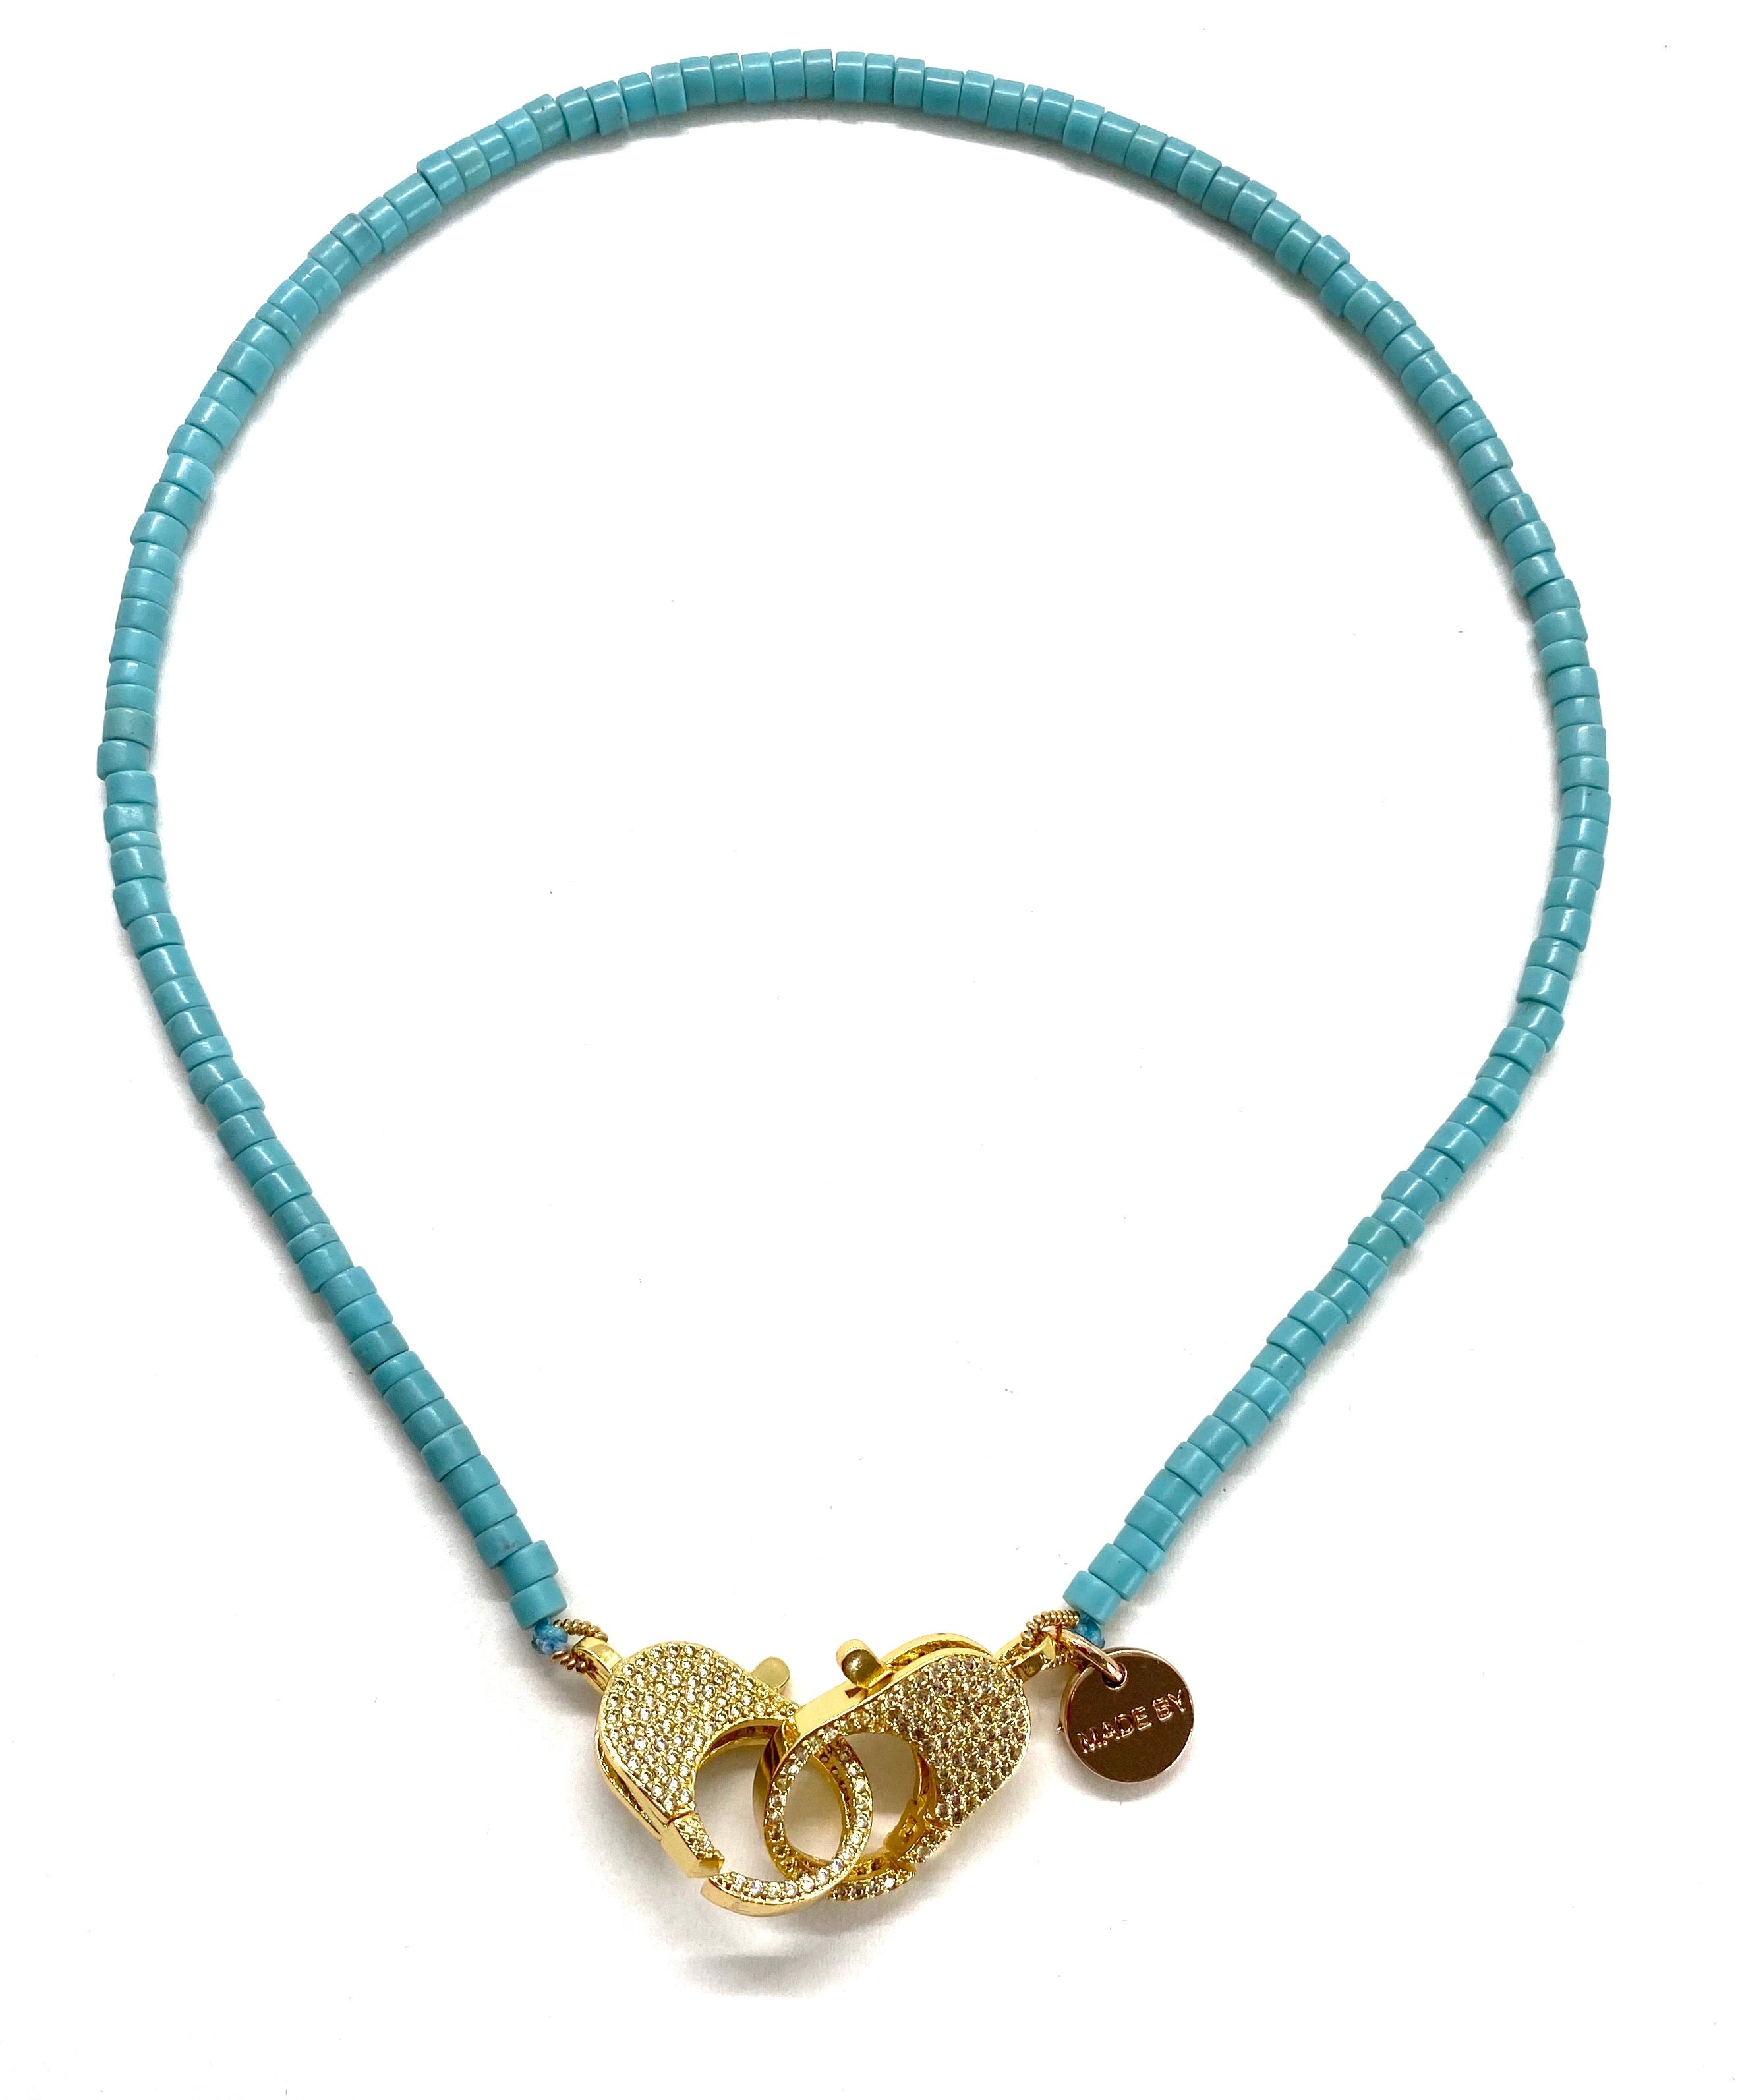 Blue 'rondelle' Christine necklace, gold clips